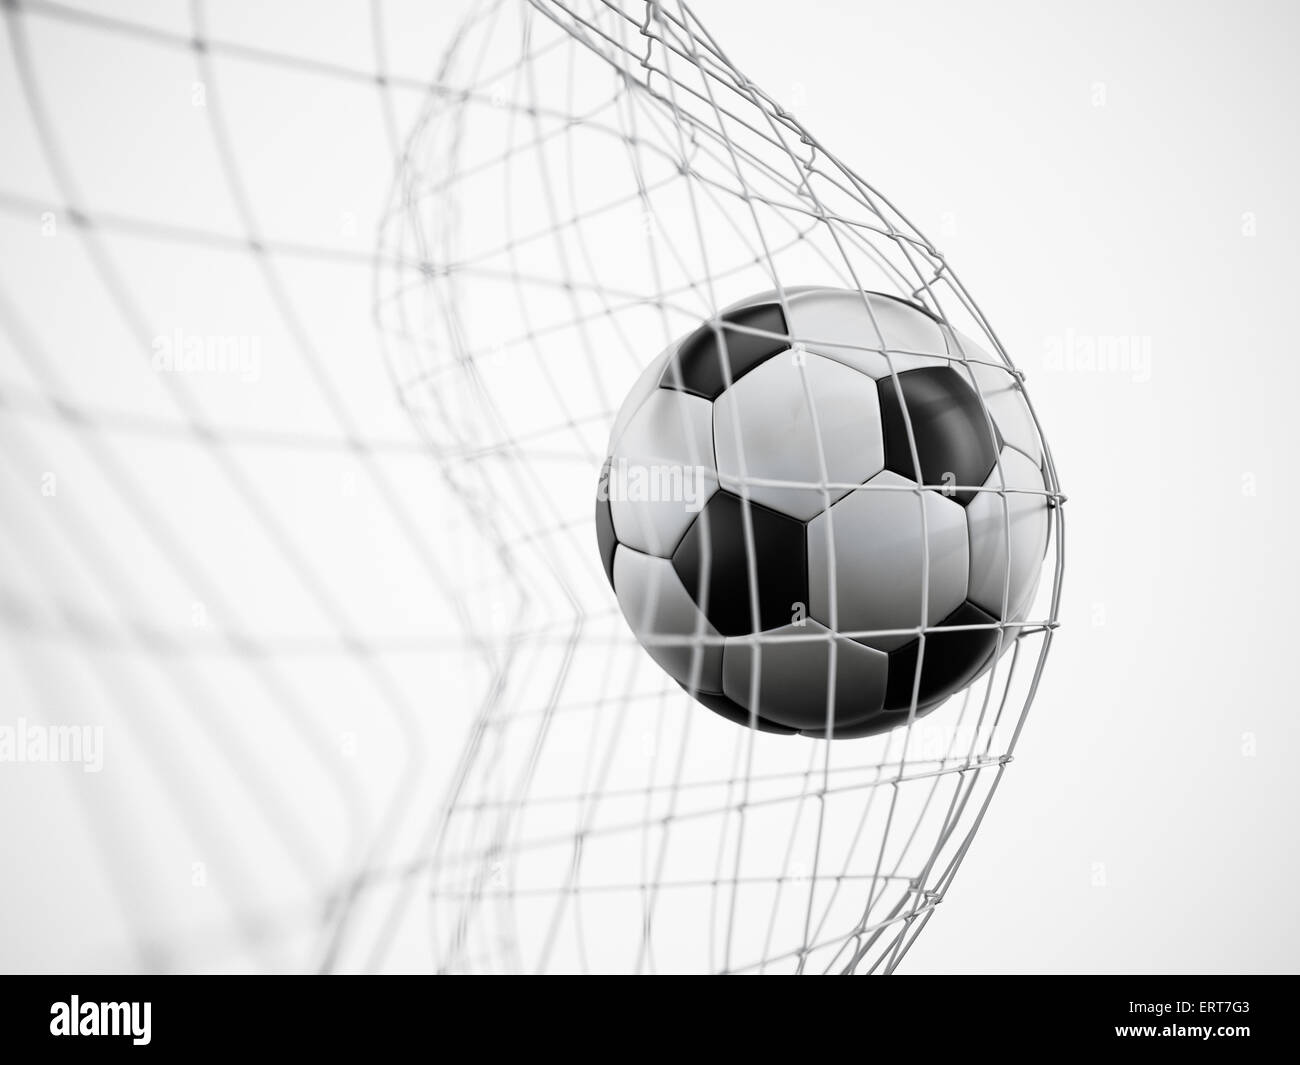 Soccer ball or football in the net isolated on white background - Stock Image